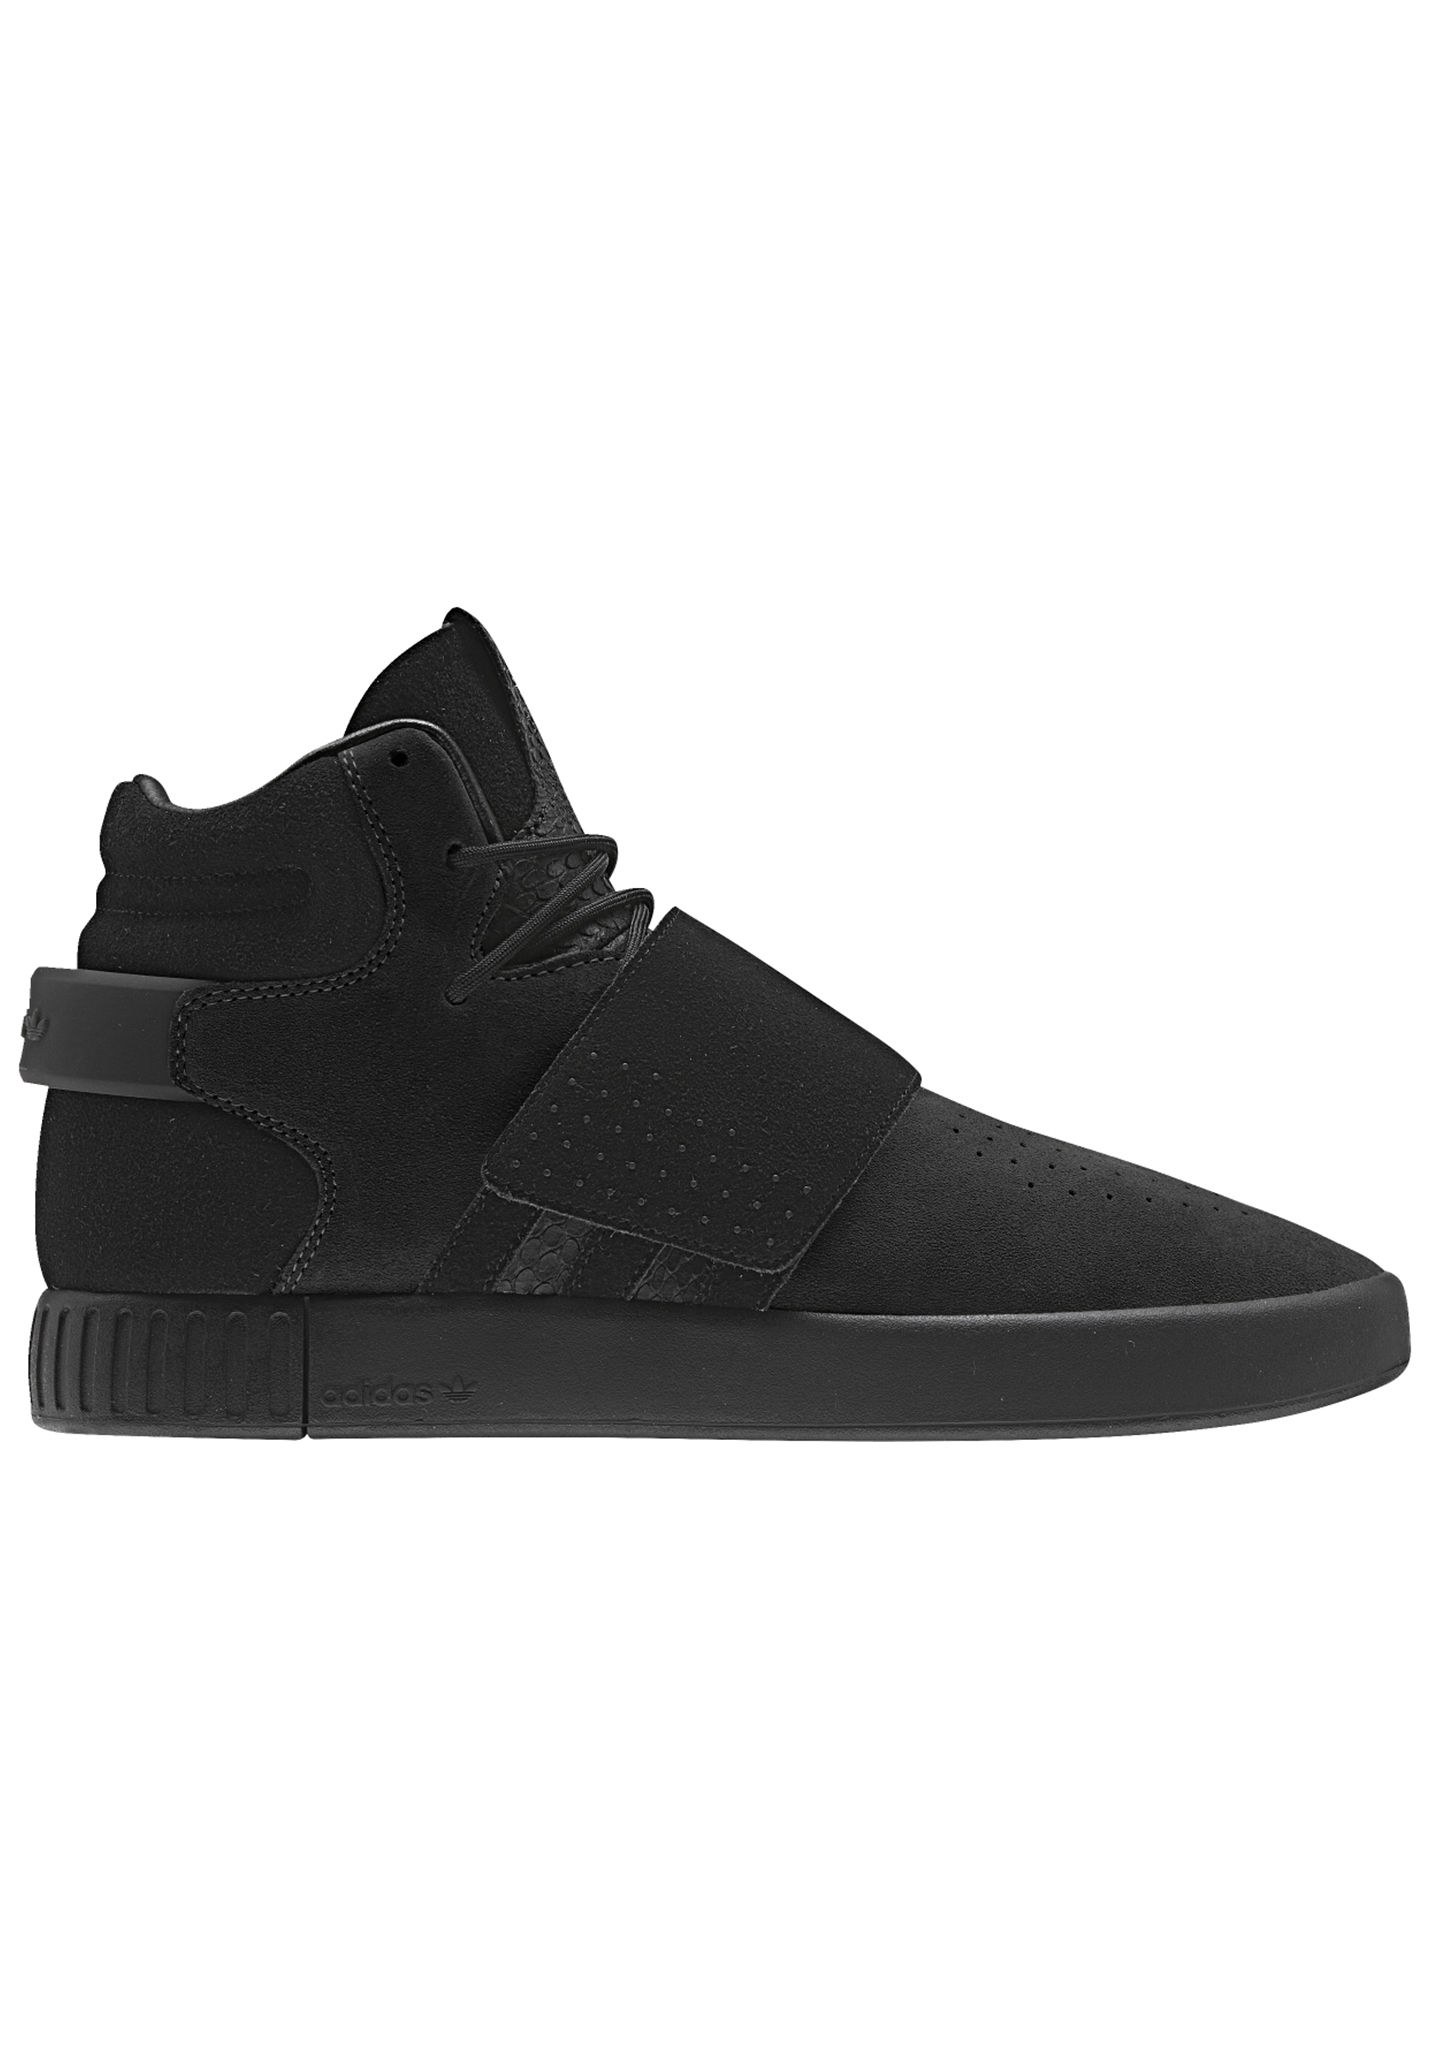 new product 5c55d ac584 ADIDAS ORIGINALS Tubular Invader Strap - Sneakers for Men - Black - Planet  Sports